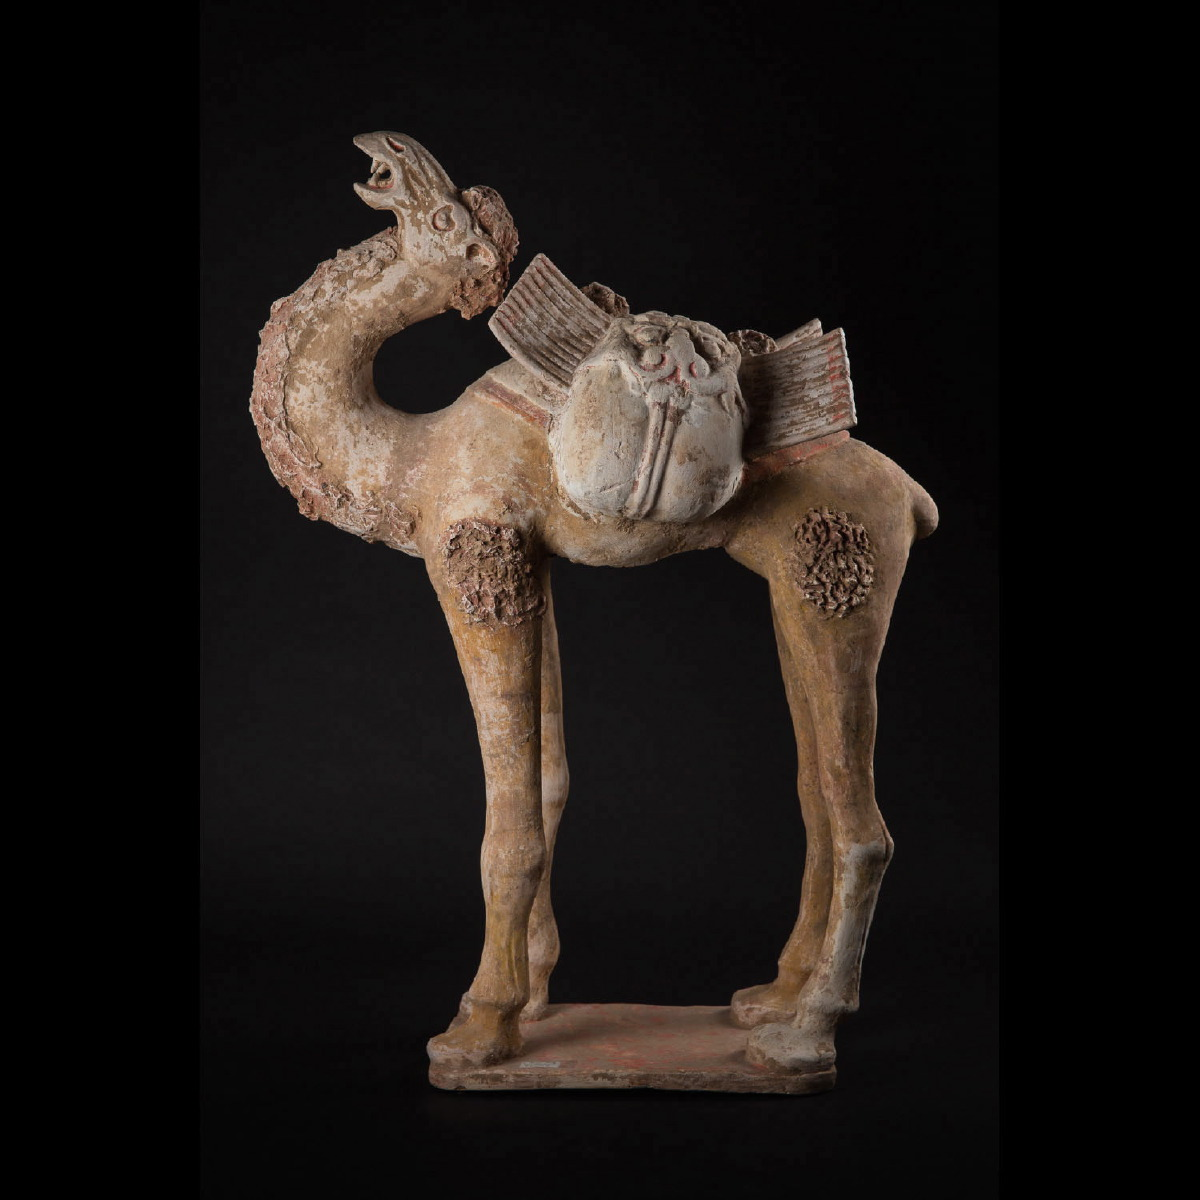 Photo of an-impressive-camel-with-packboard-tang-dynasty-galerie-golocnda